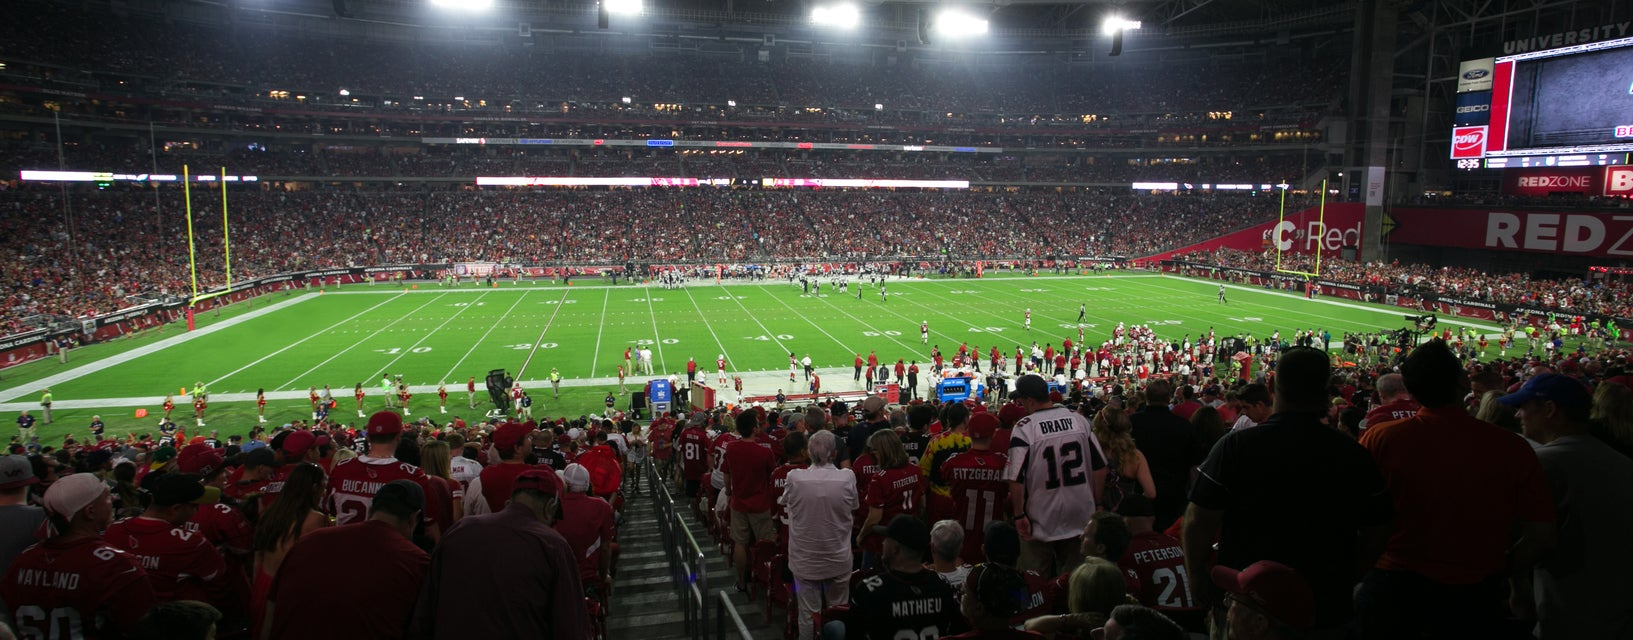 Seat view from Main Level Sideline